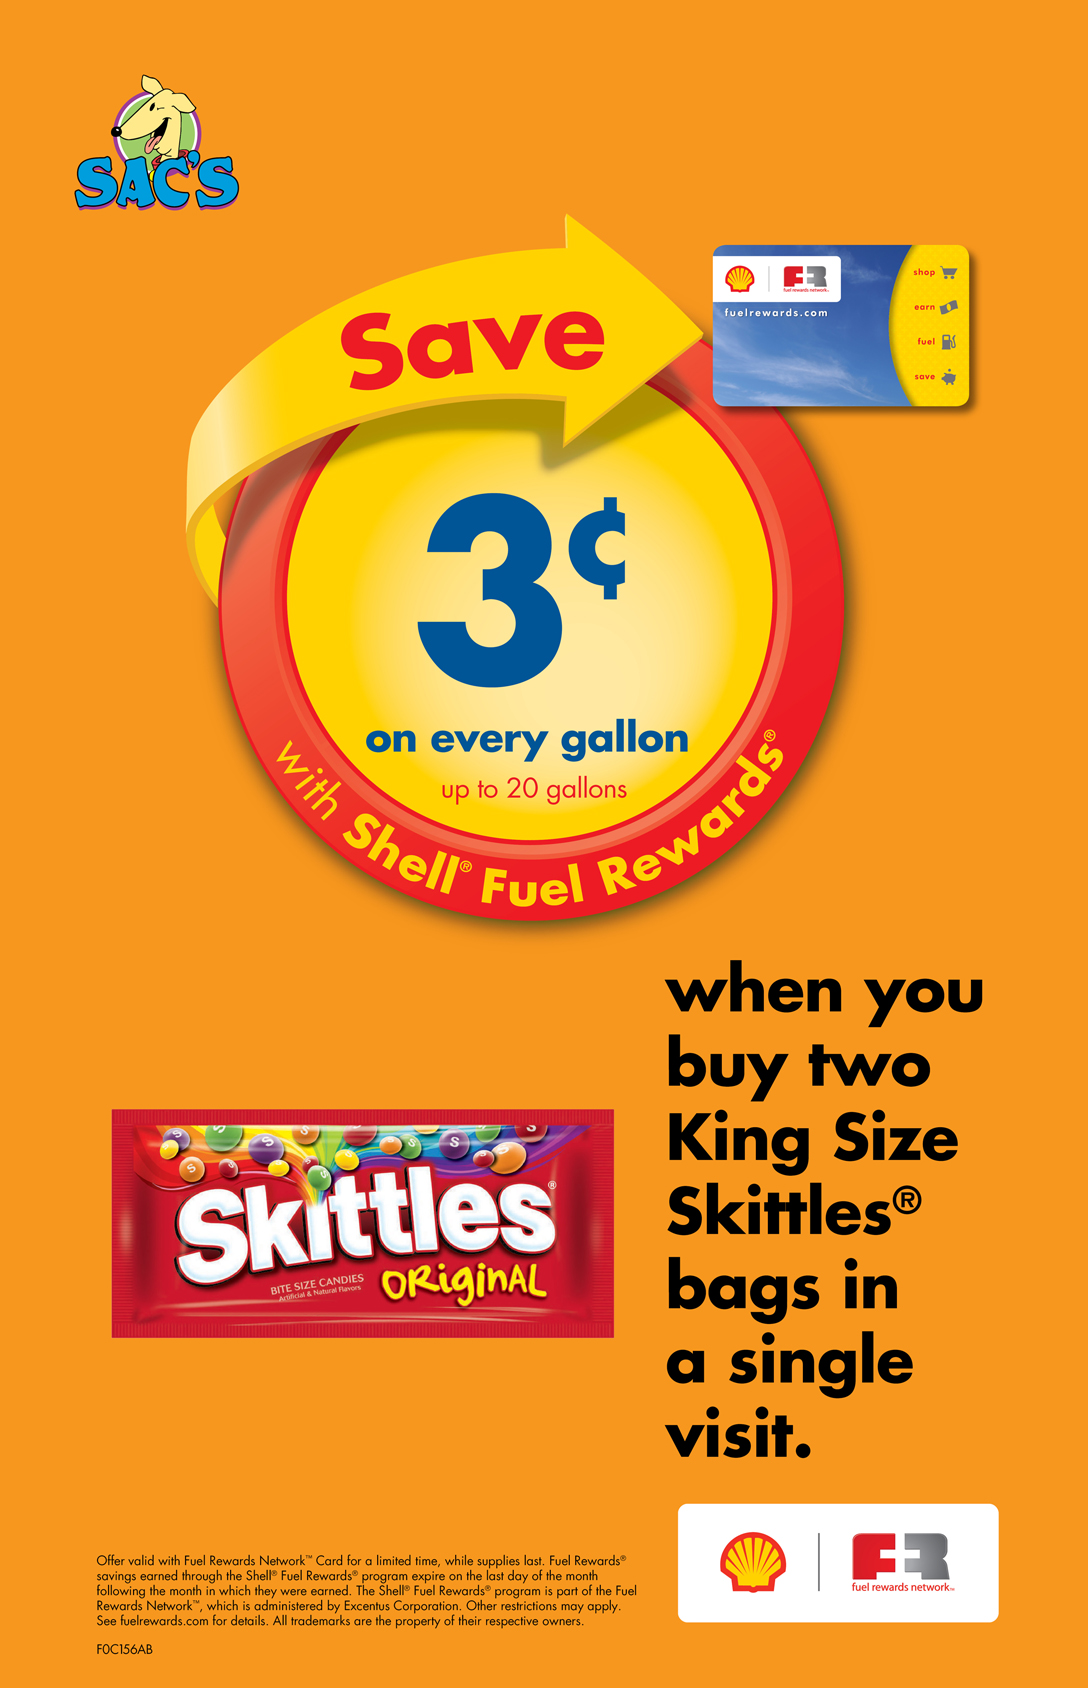 Save 3 cents per gallon when you buy two king size Skittles